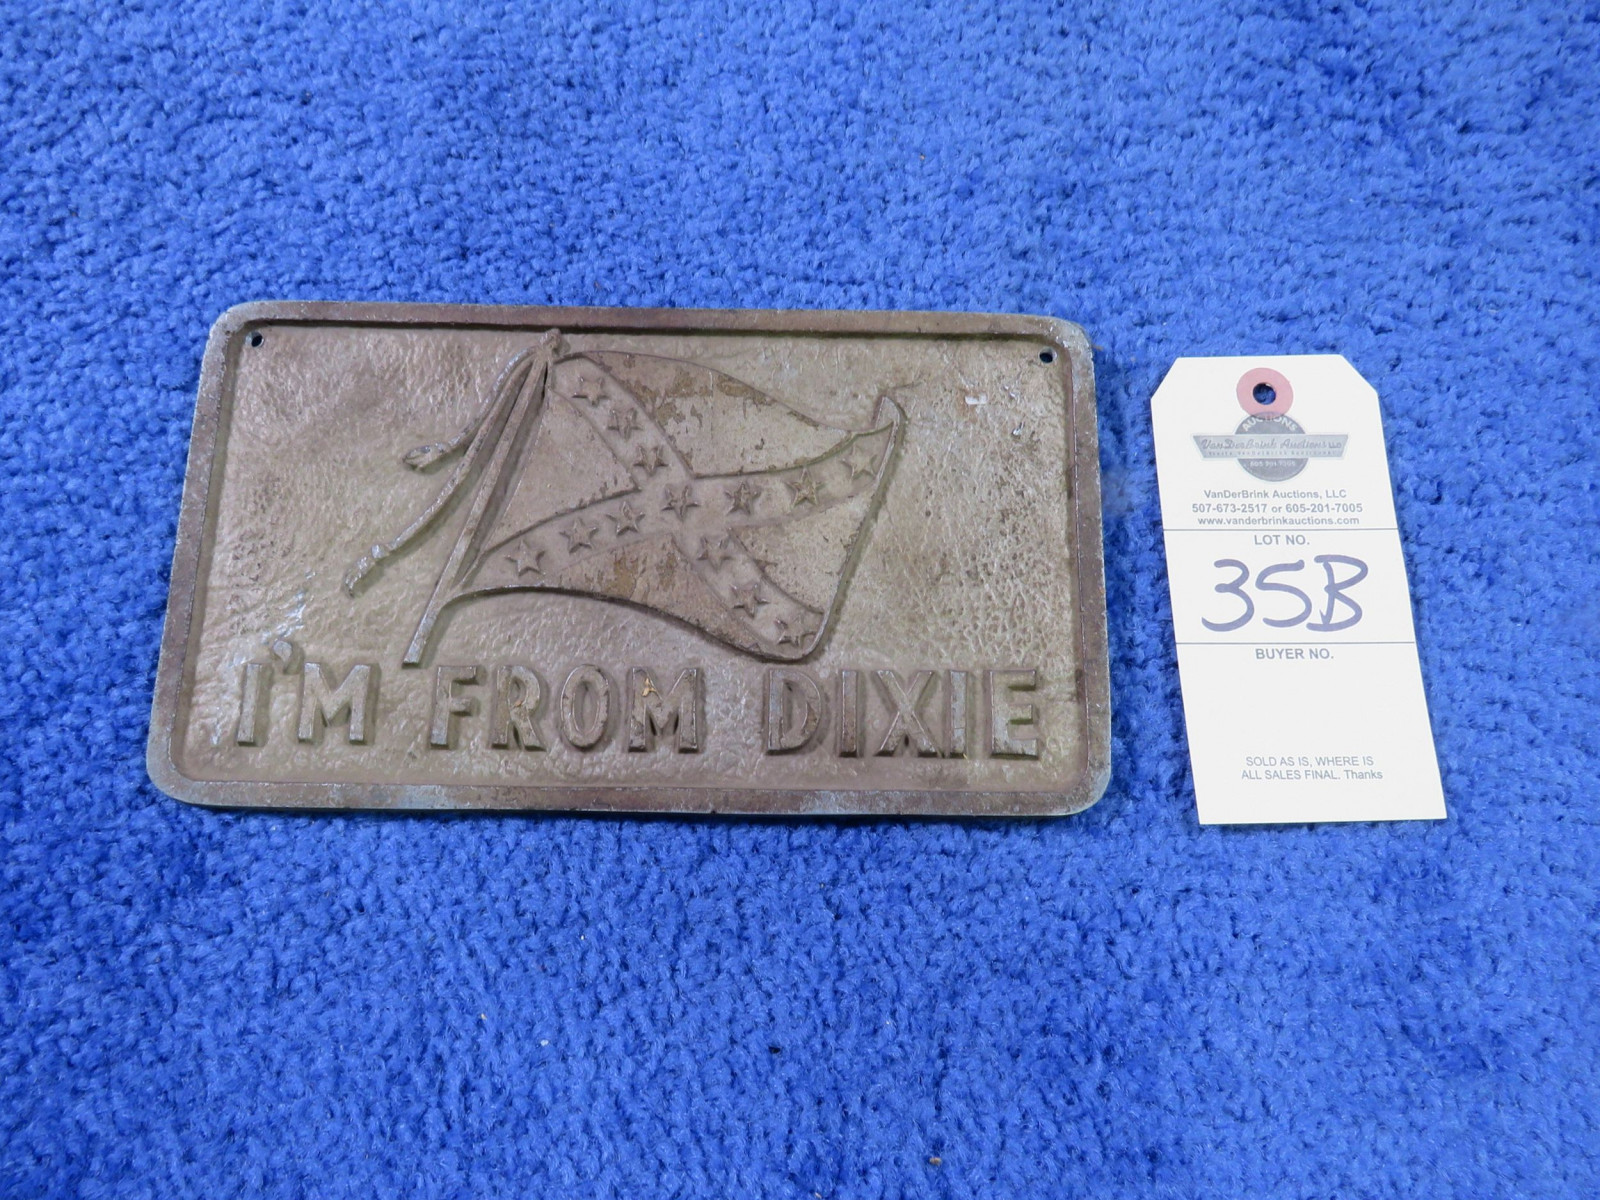 I'm From Dixie Vintage Vehicle Club Plate- Pot Metal - Image 1